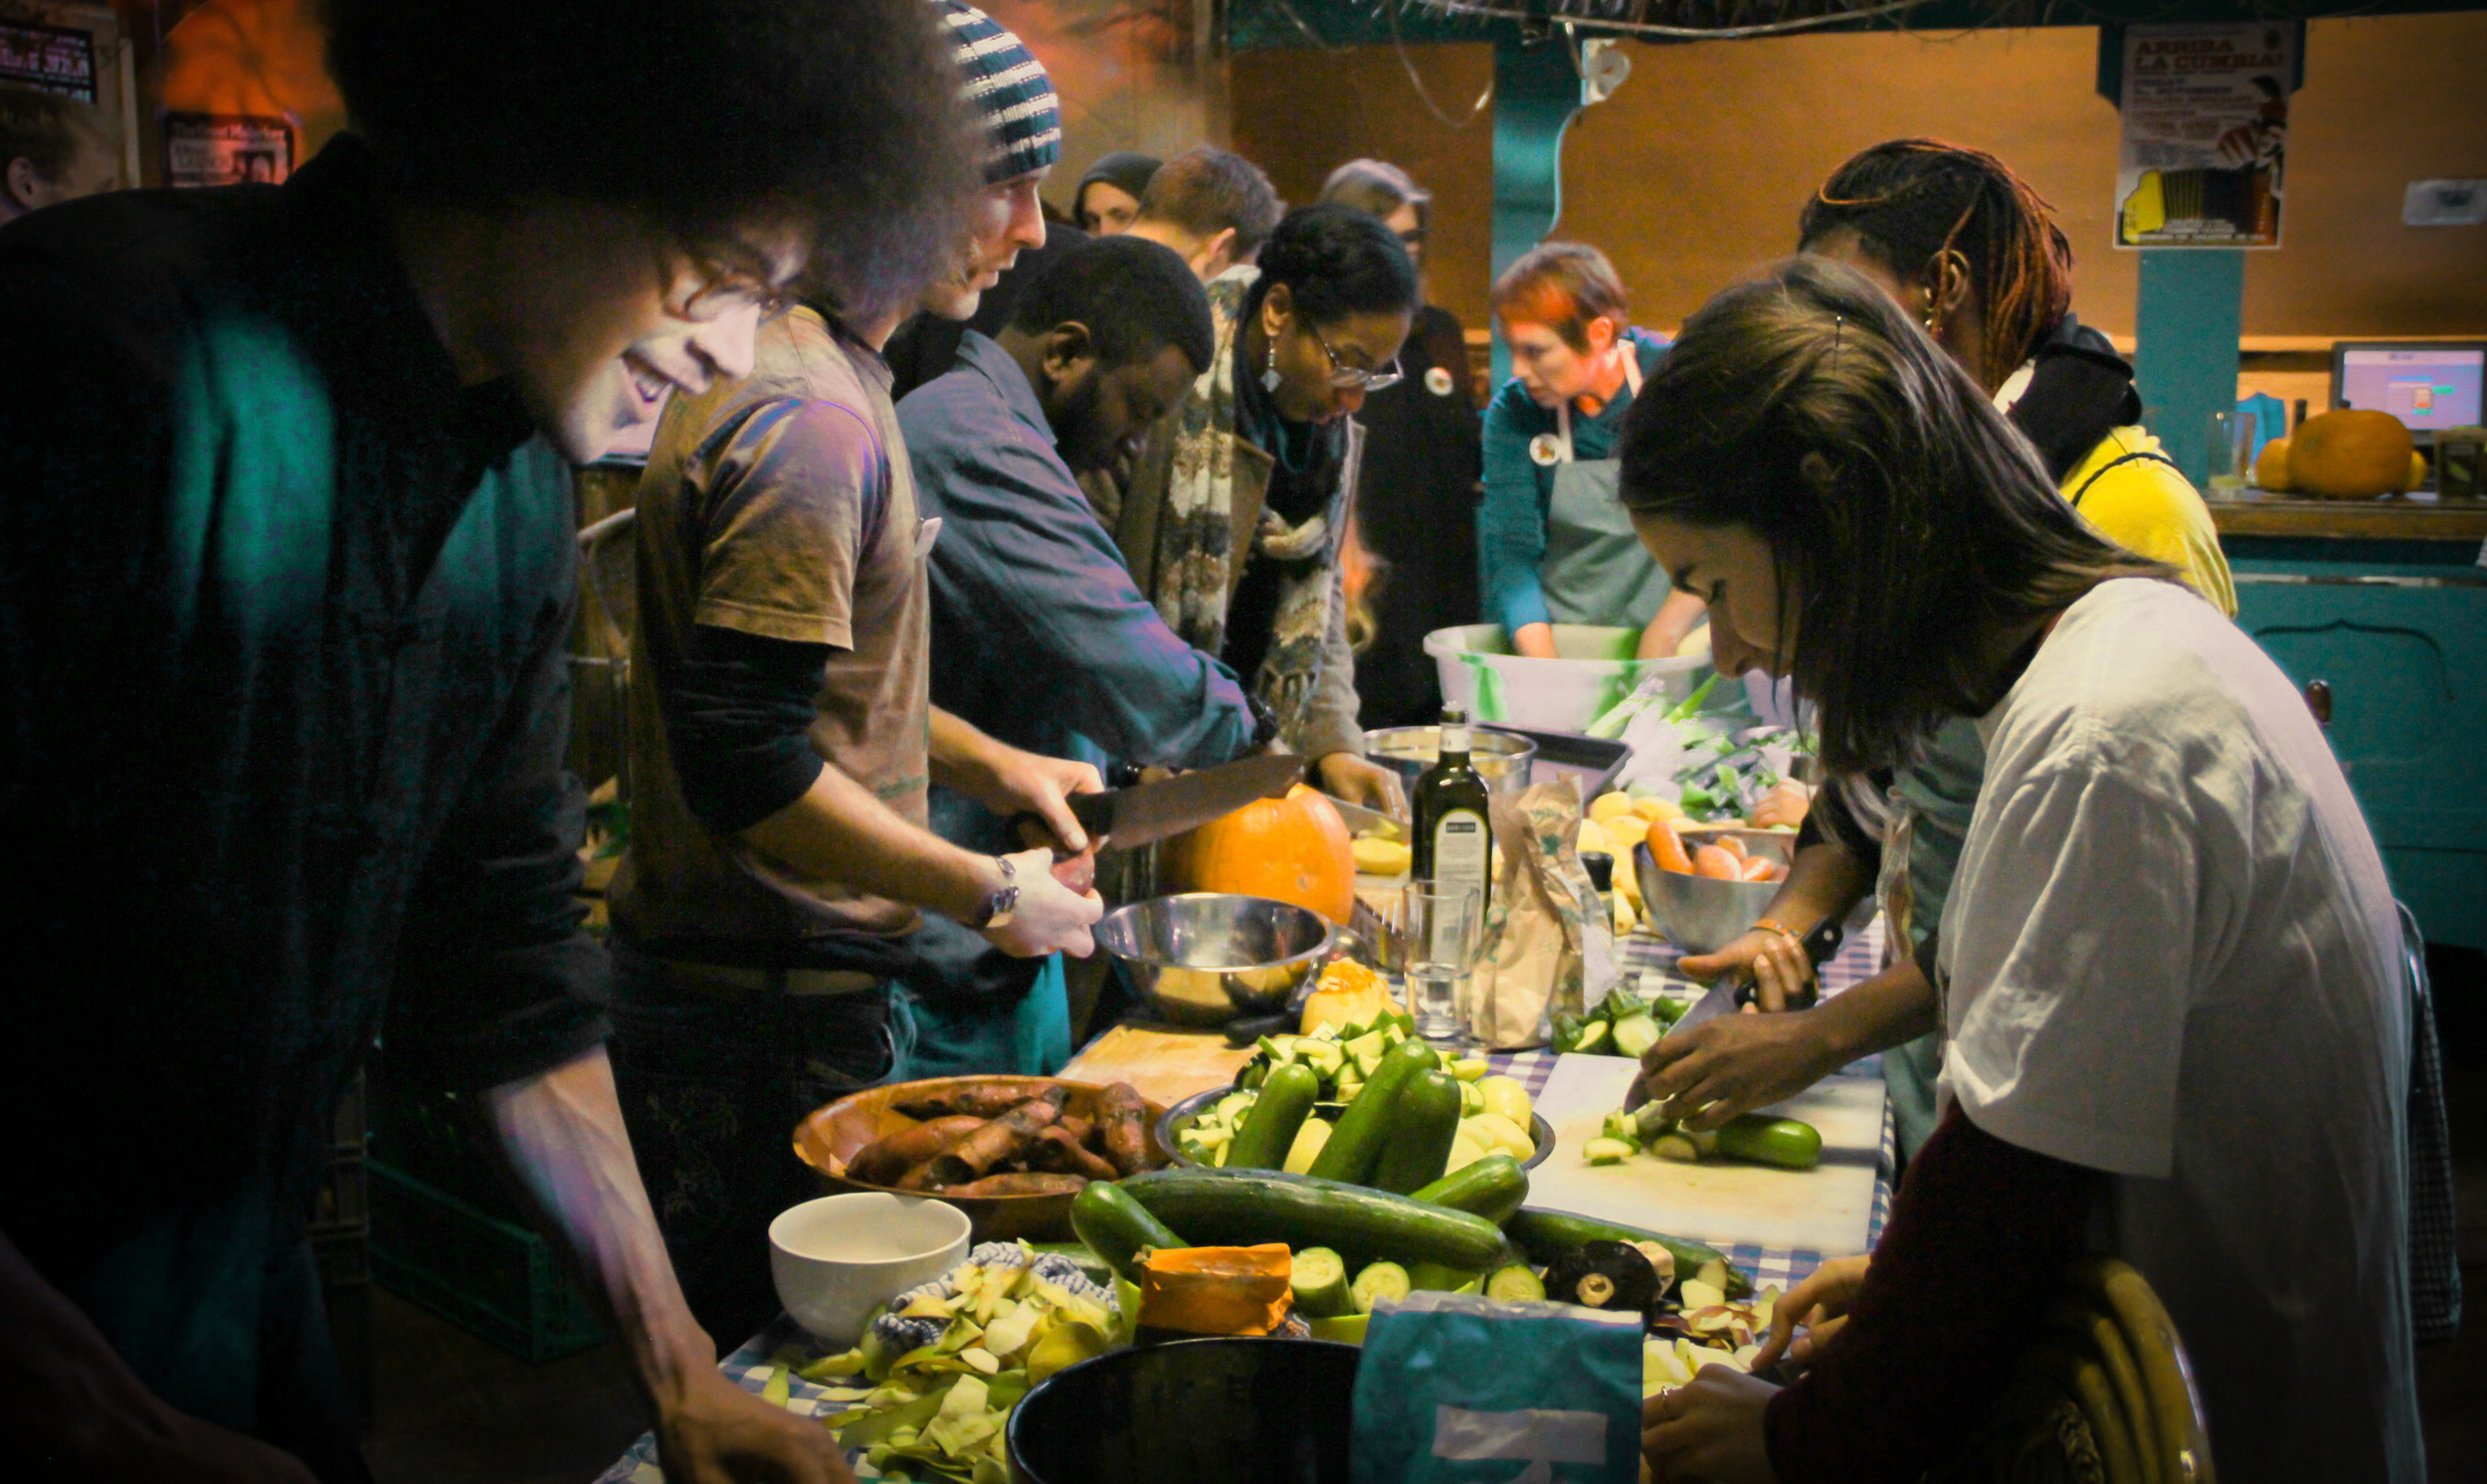 Food being prepared by a large group of people